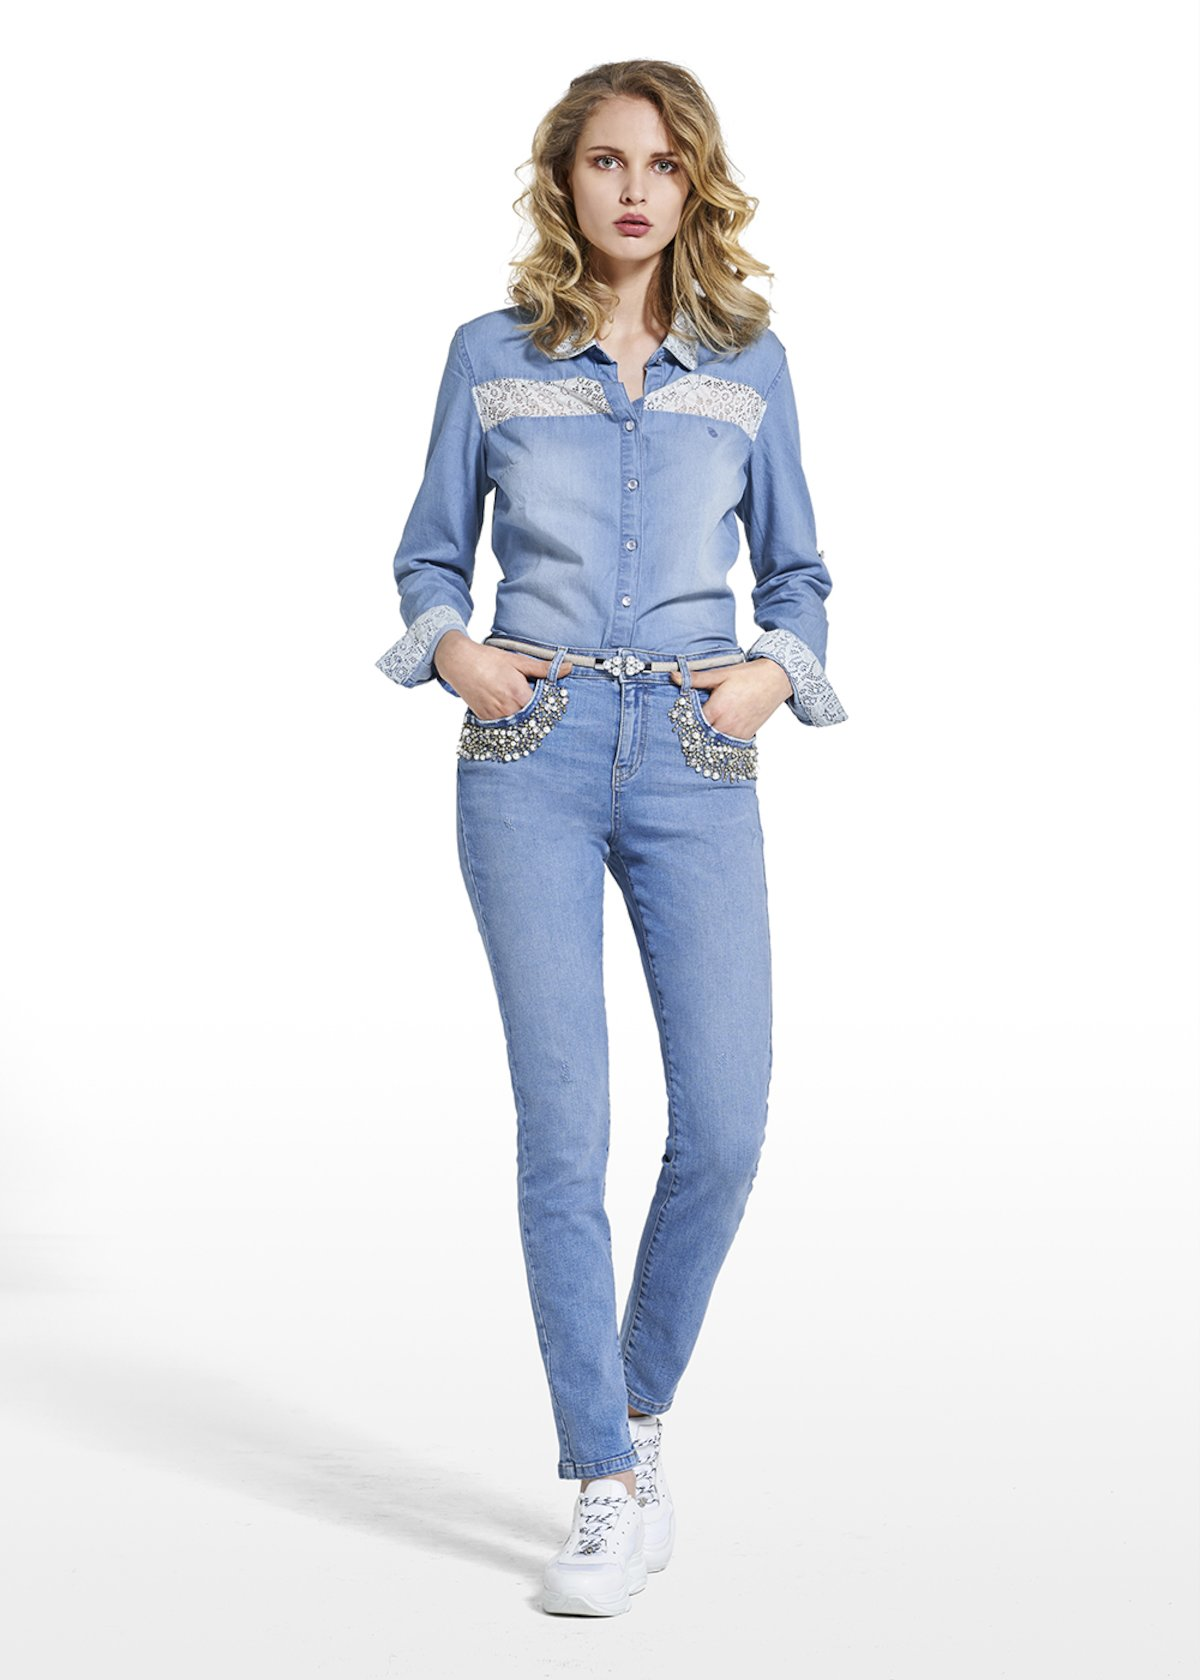 Blouse Caril in denim with lace detail - Light Denim - Woman - Category image